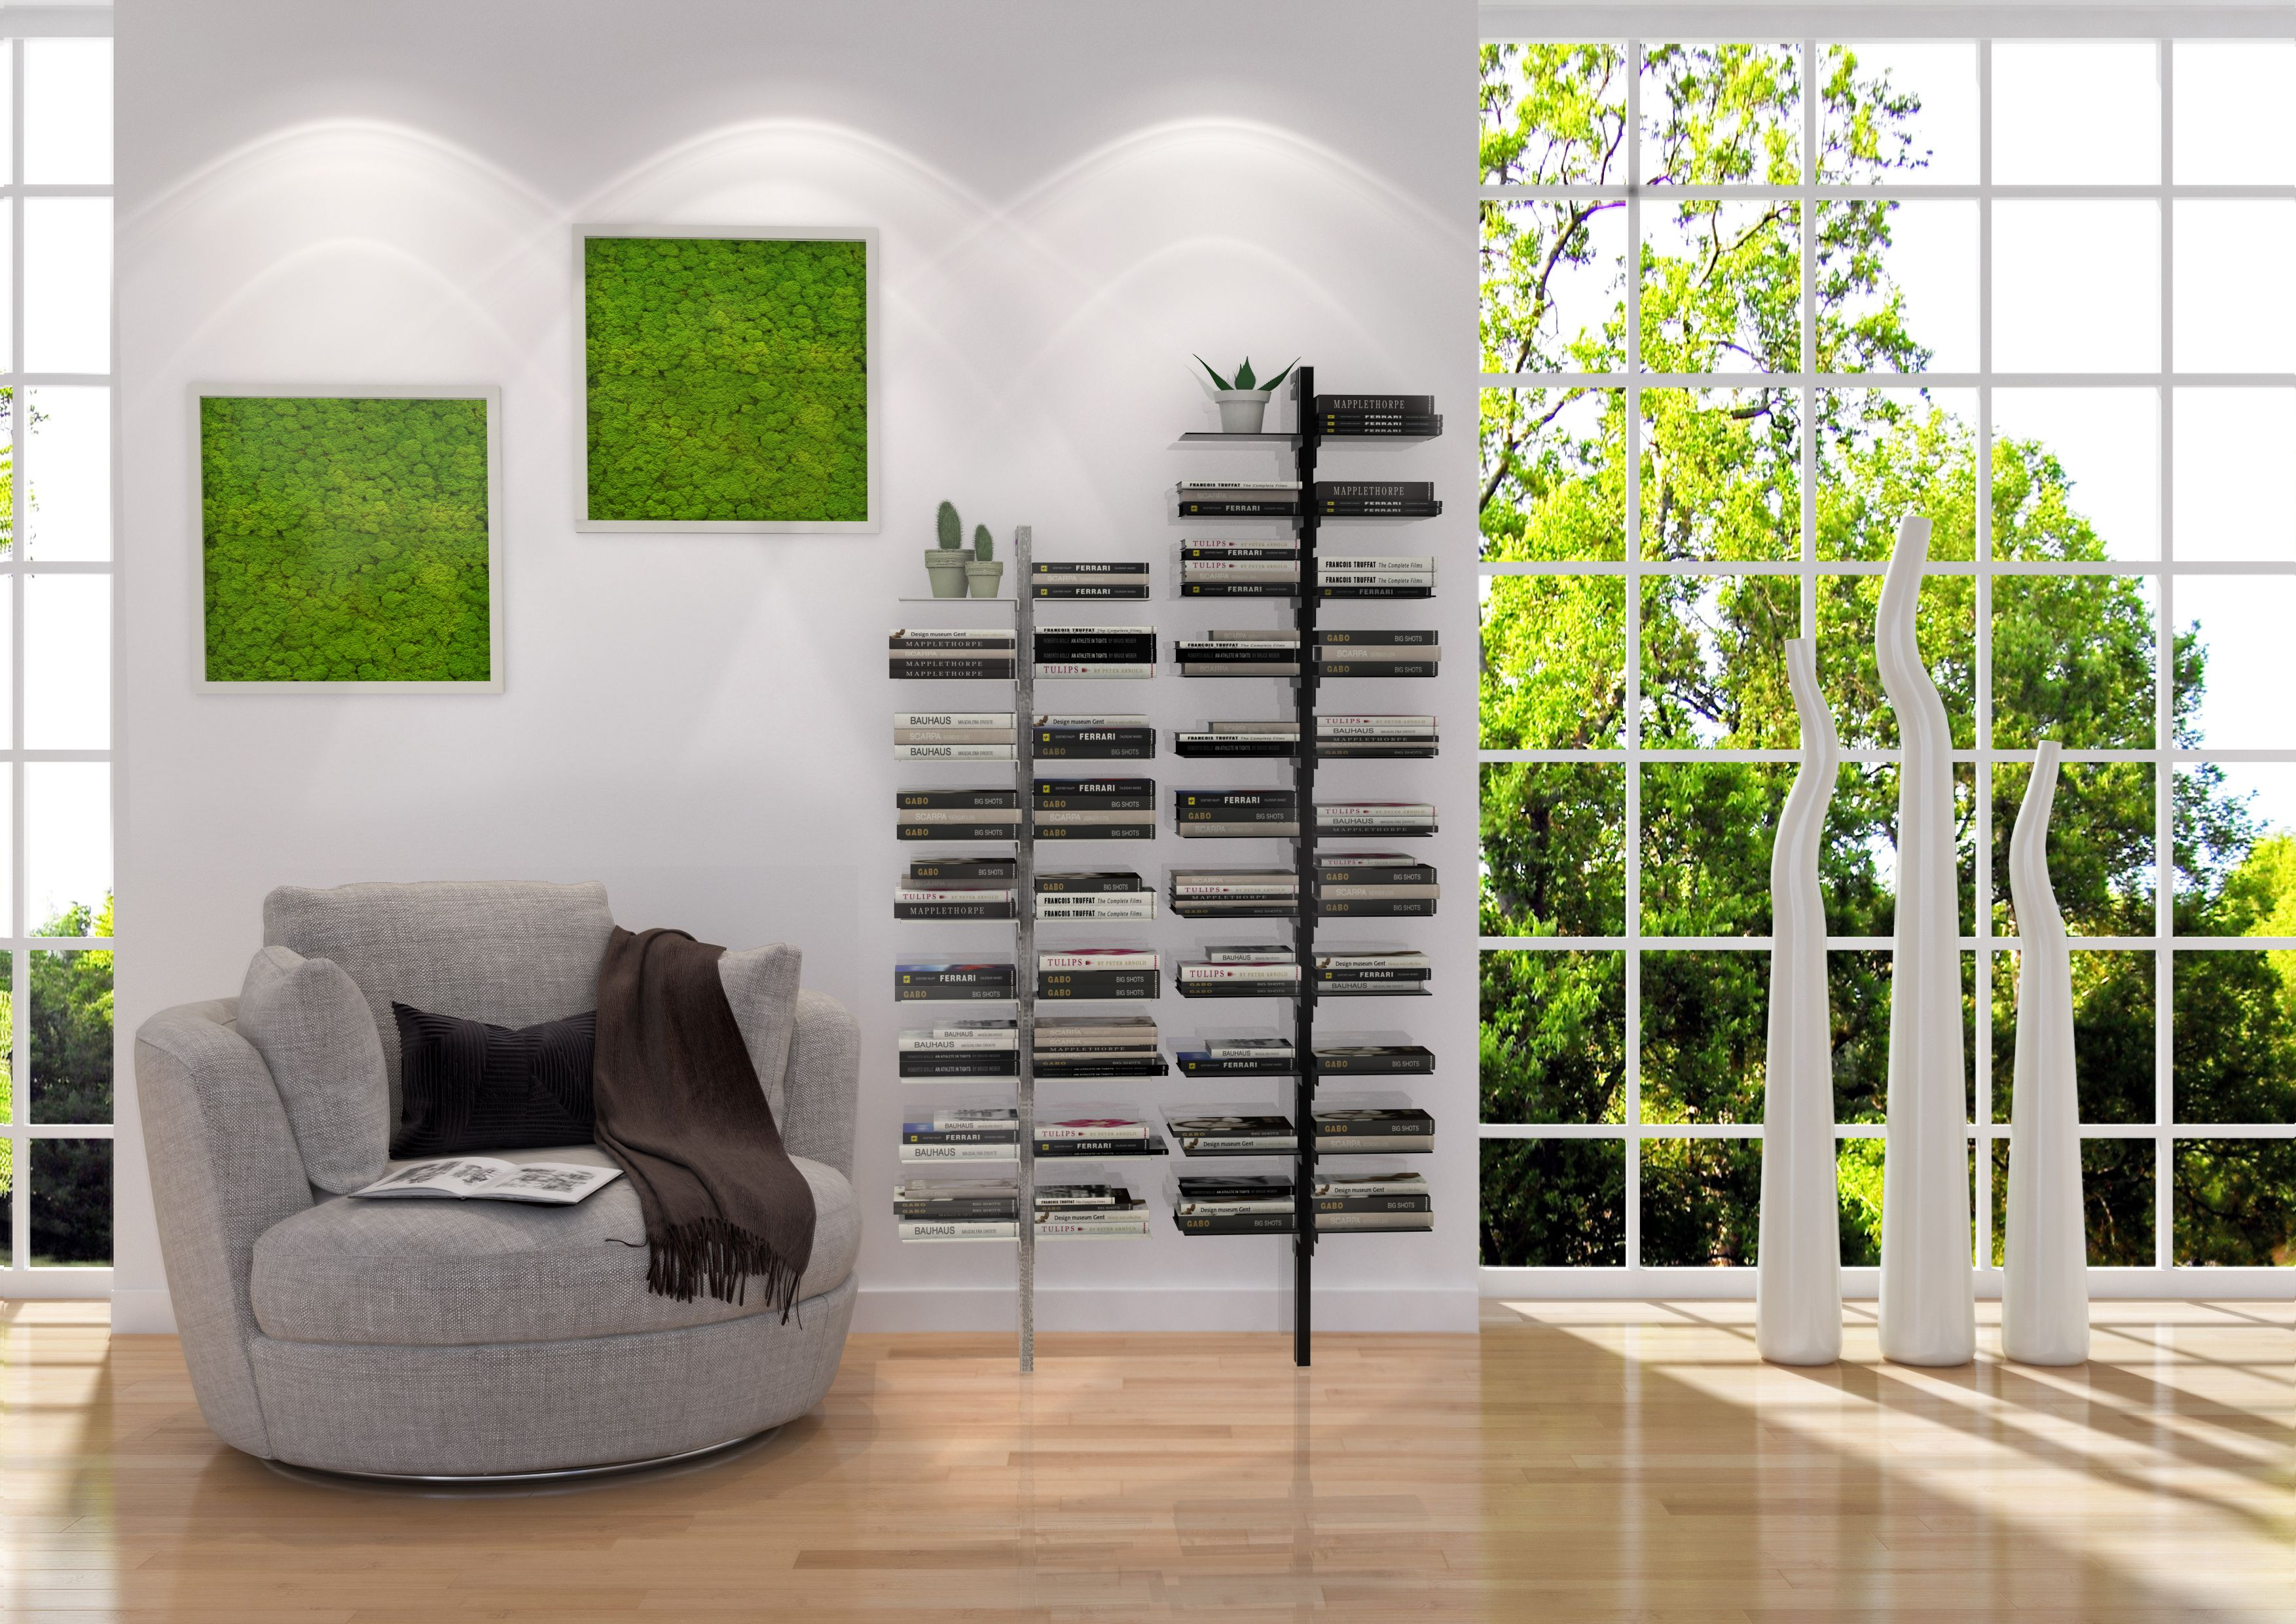 Dotto Wall Library  Easy to assemble , the plans can be placed at the desired height , can be used not only for books but also other items like plants .. to decorate every room of your home